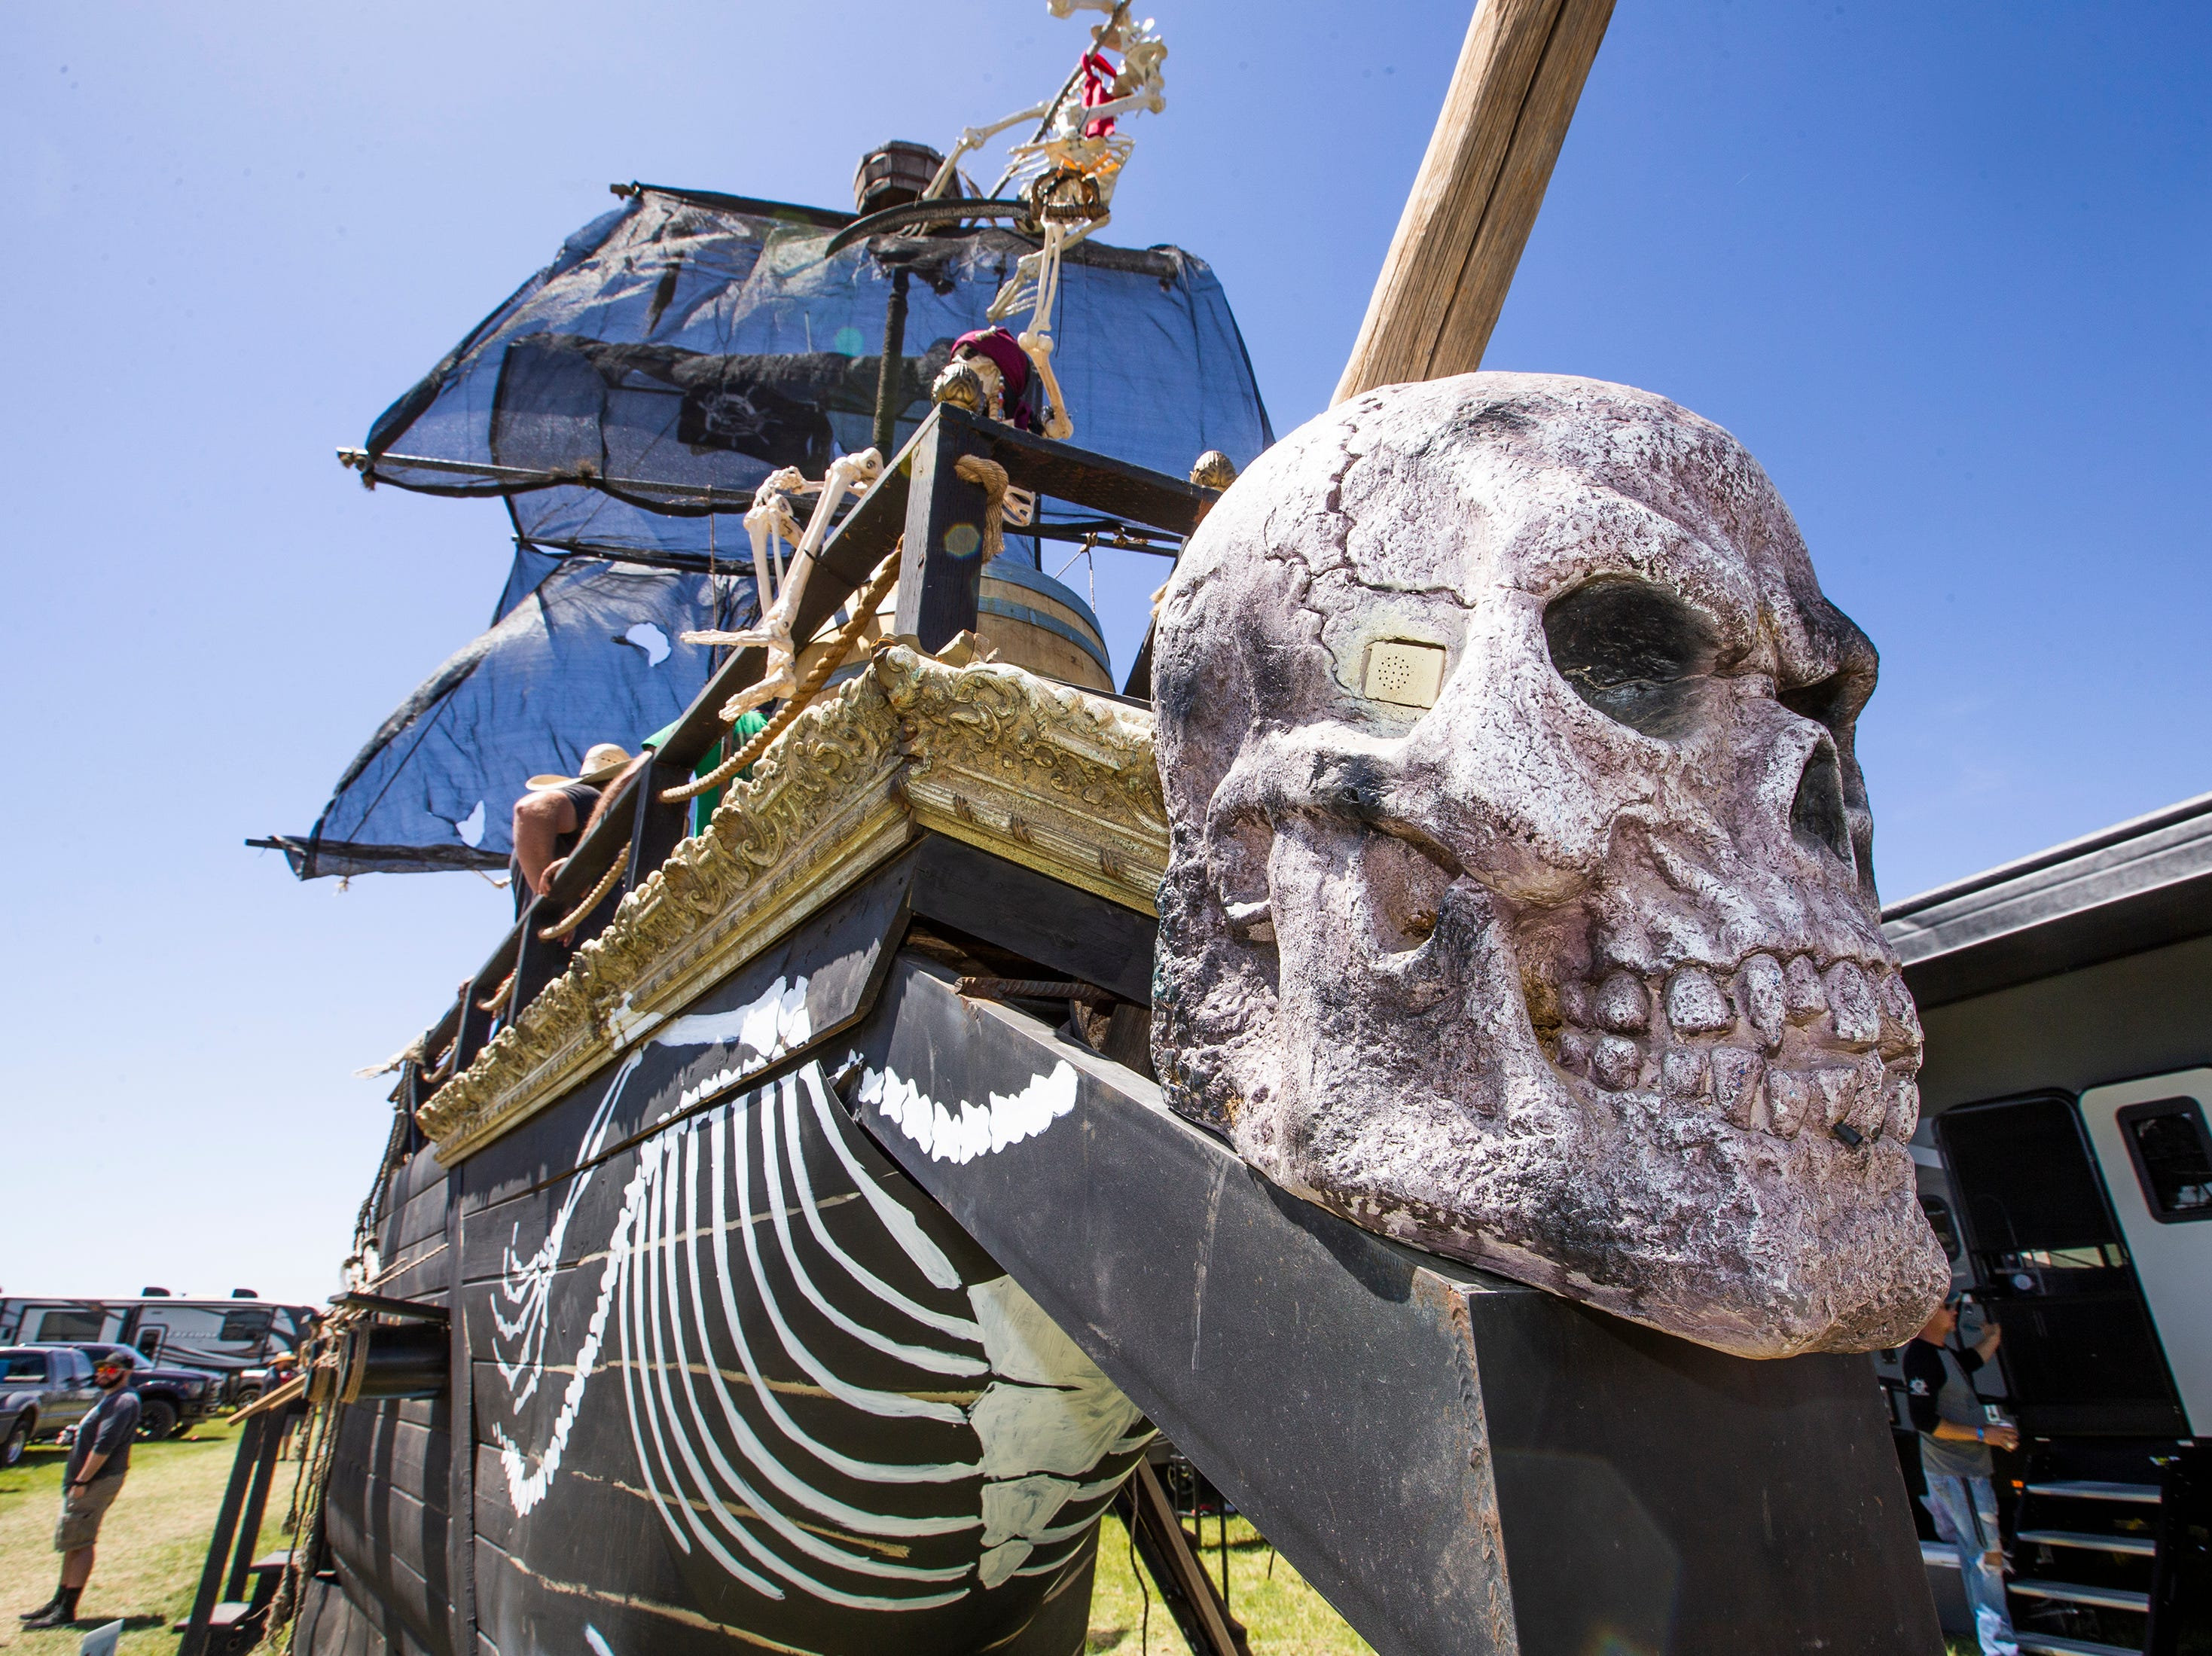 A pirate ship, built by Sean Franklin, 41, Queen Creek, Rich Reeves, 32, Mesa, and Christian Zeitler, 34, Queen Creek, is a hit at Country Thunder Arizona 2019 near Florence, Thursday, April 11, 2019. The ship has cannons that shoot water and a bar.